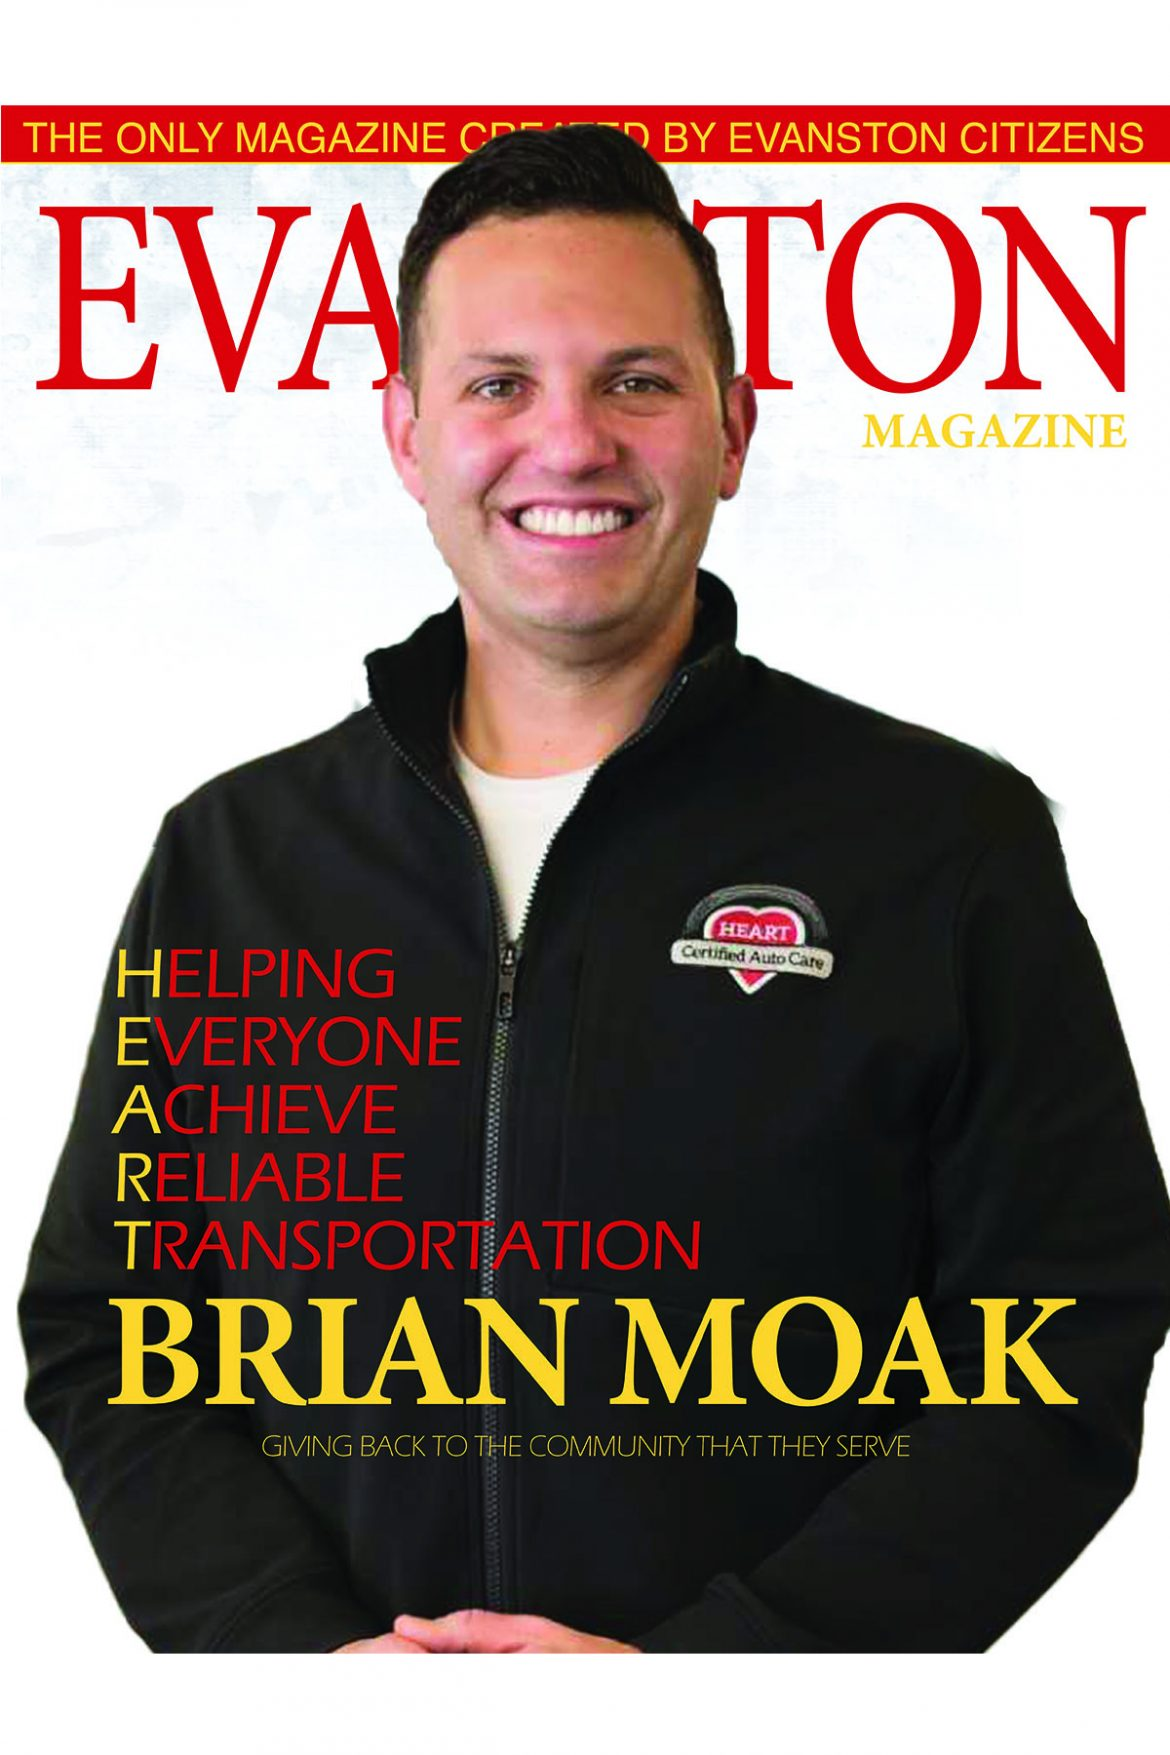 Evanston's Heart is grounded in Great Automotive care